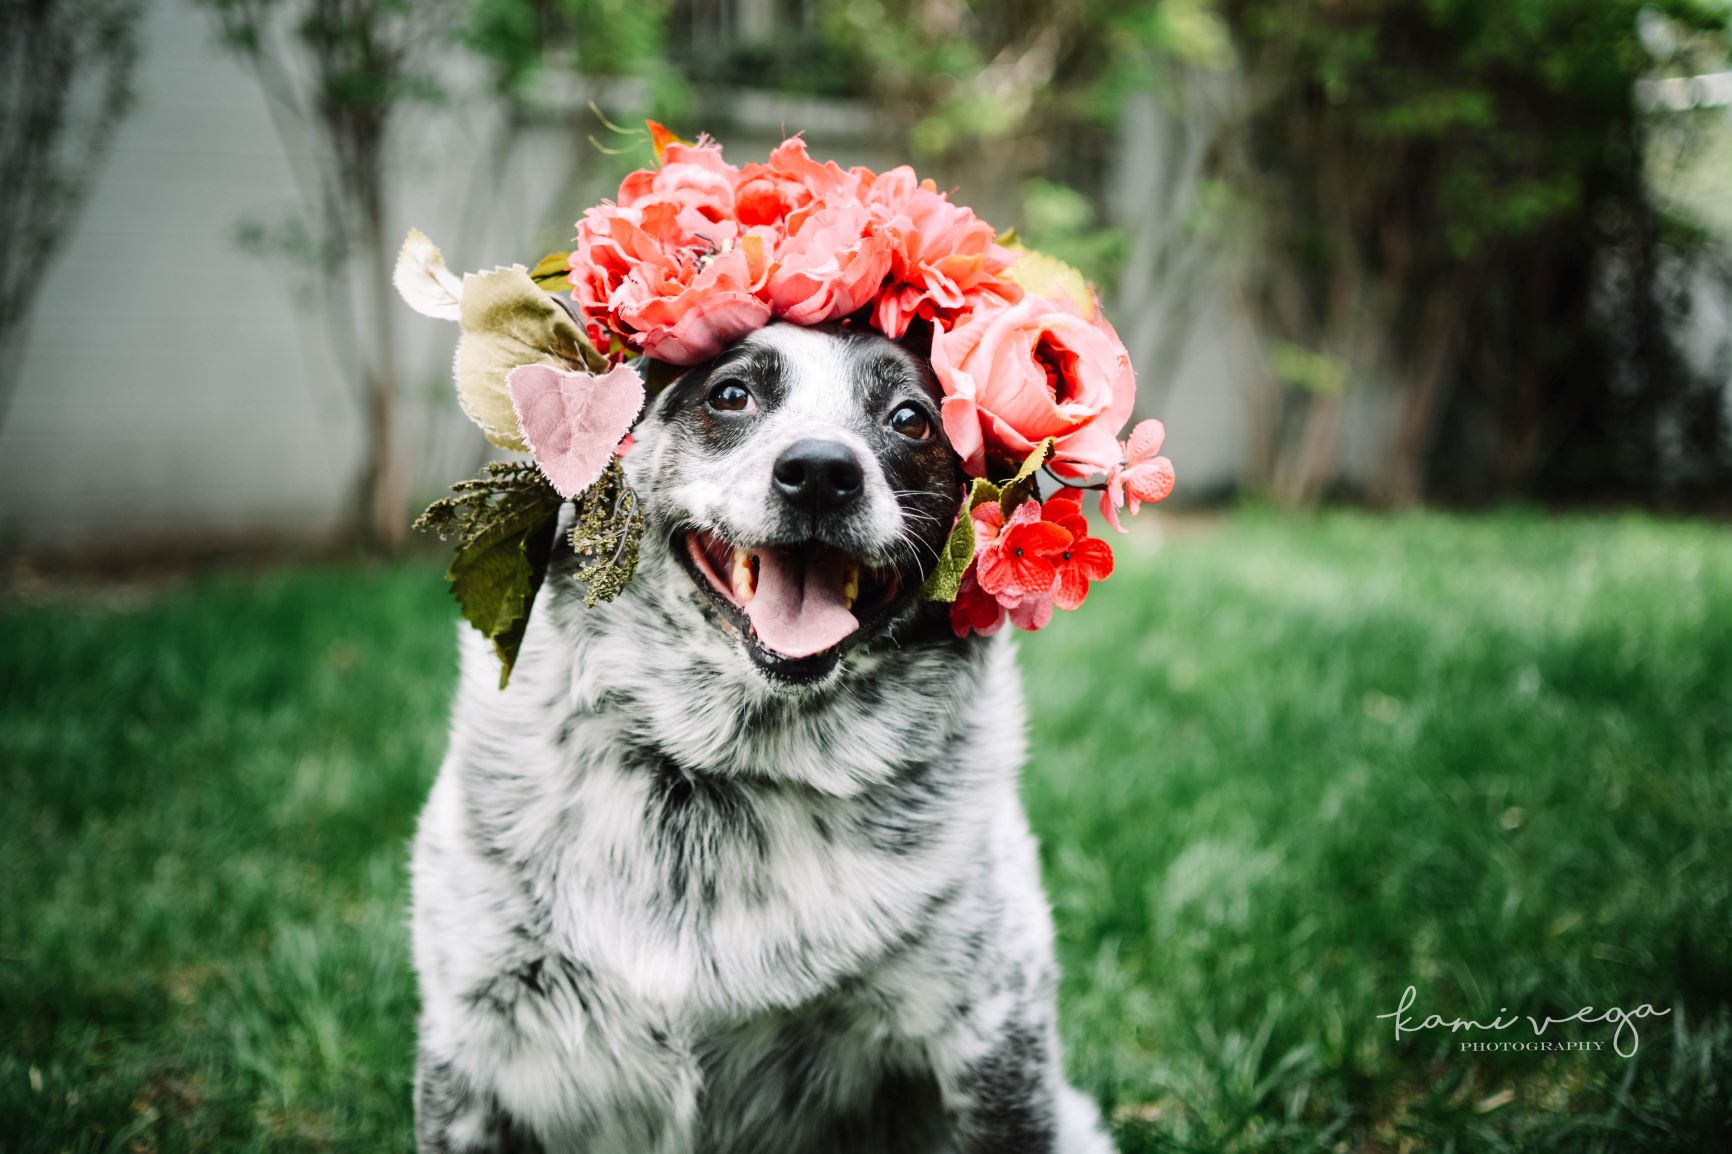 Grey and White Dog with Floral Crown at Utah Animal Adoption Center